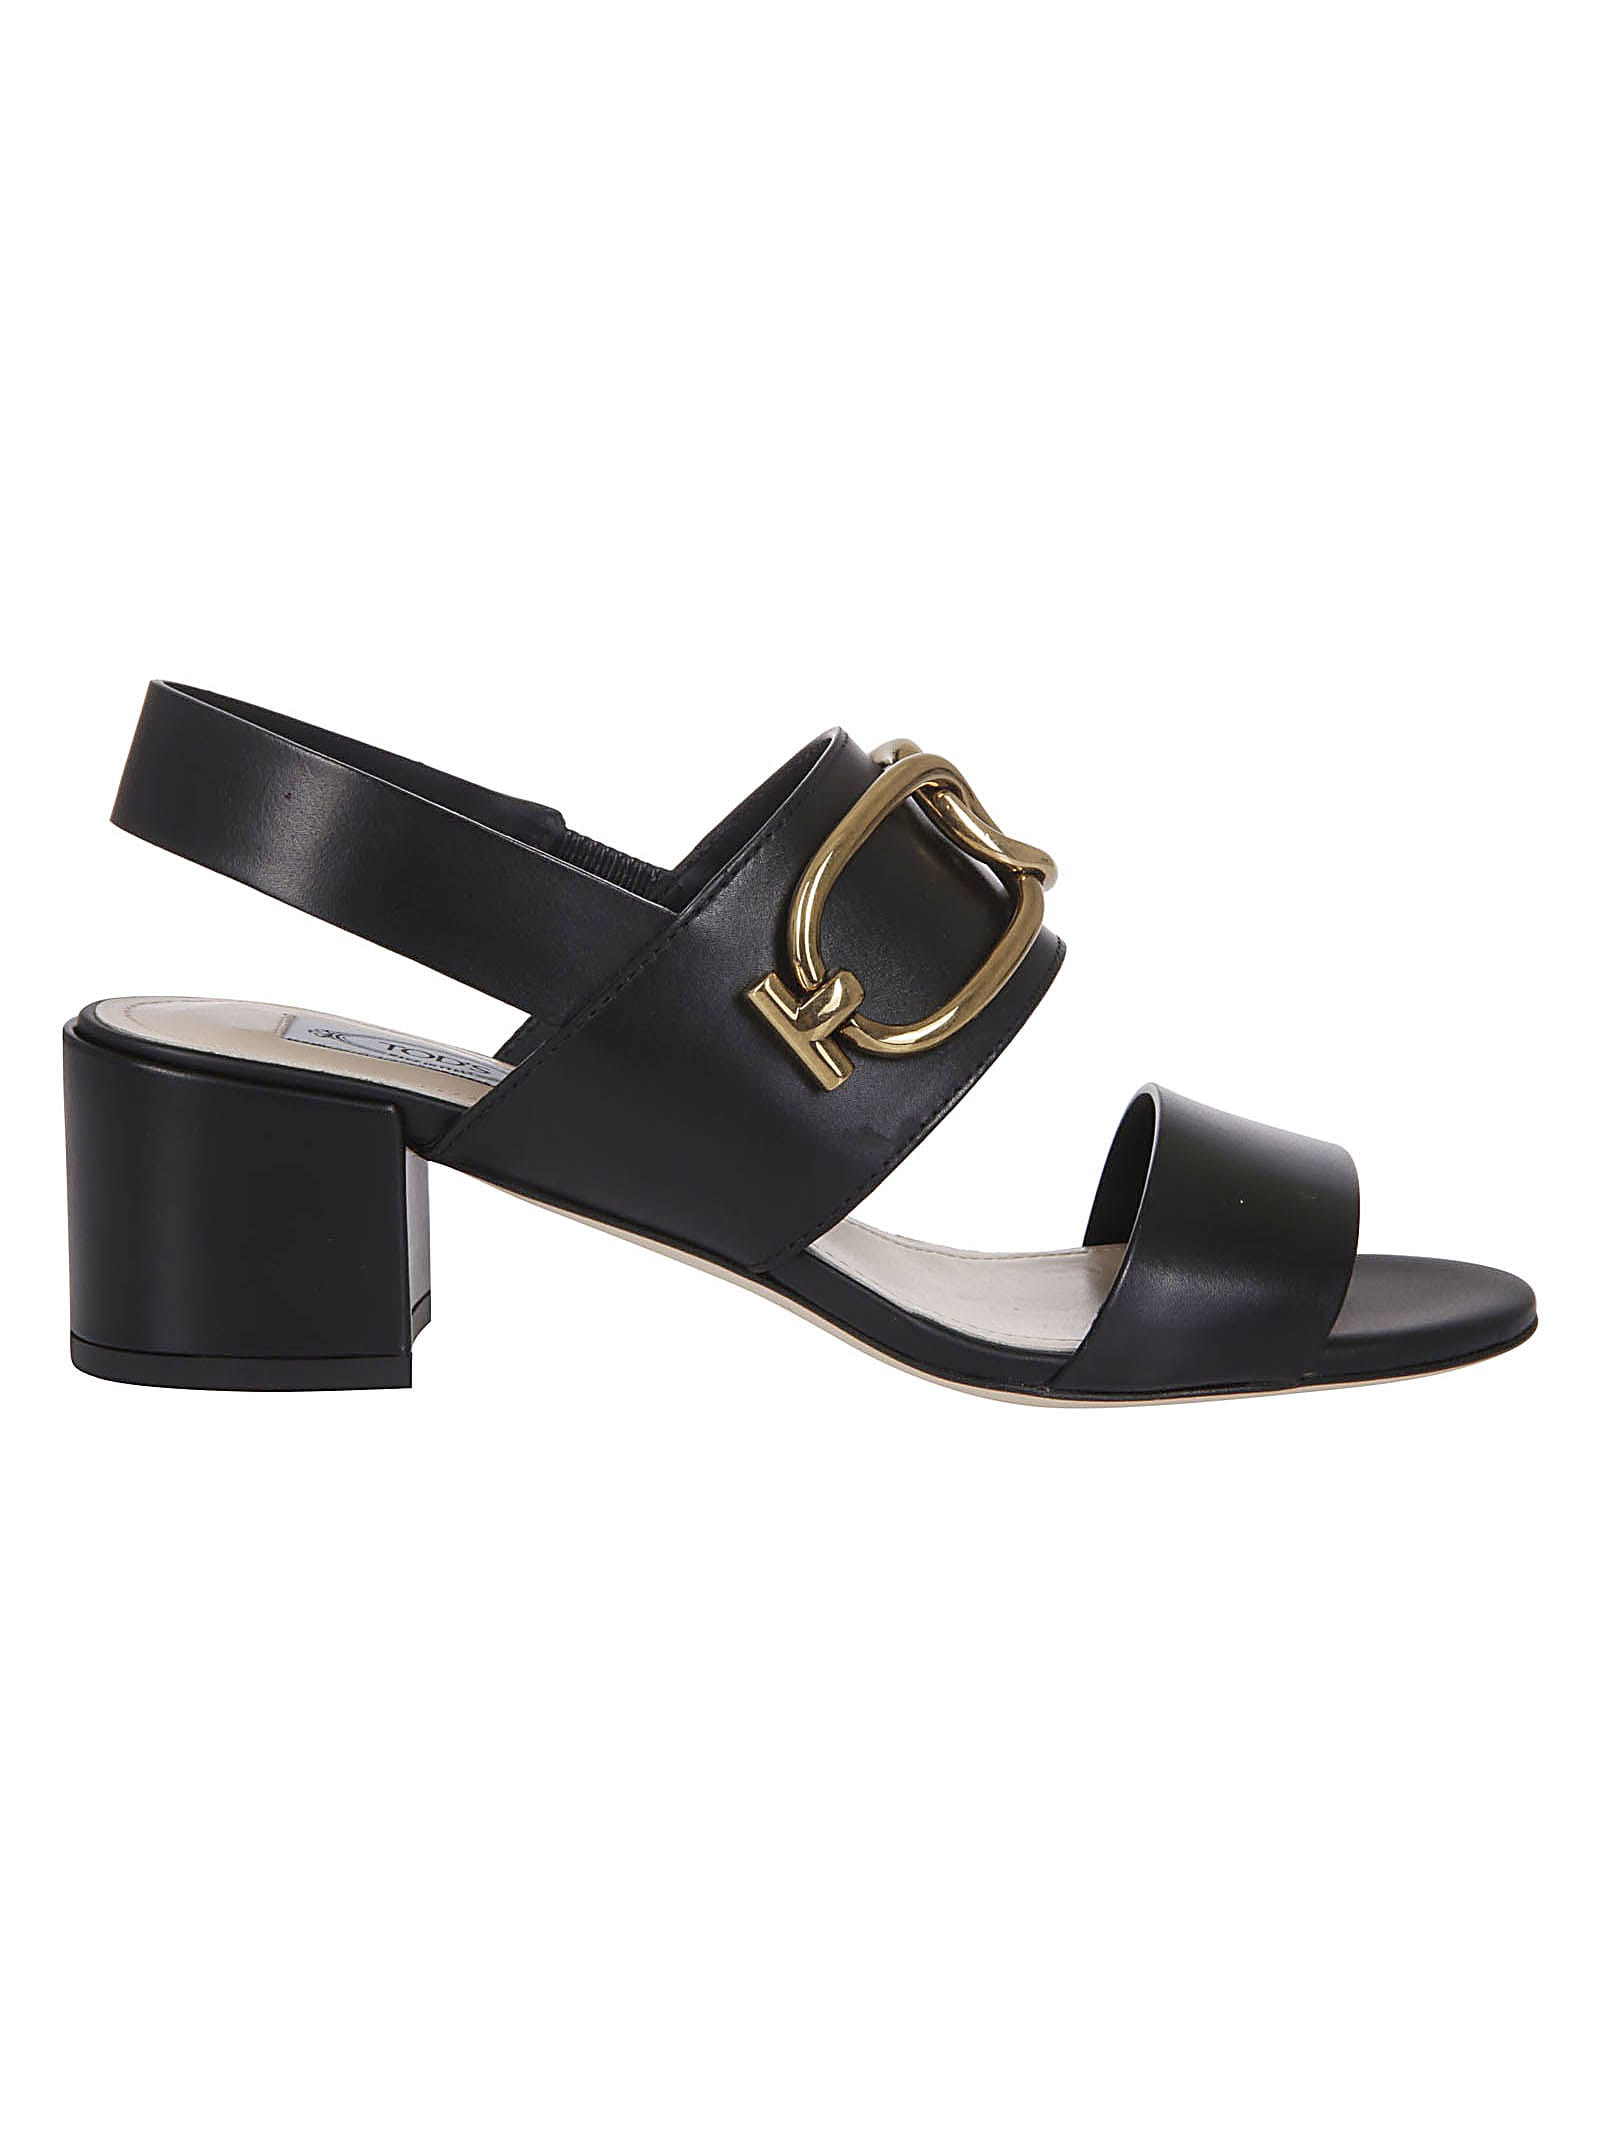 Tods Tods T-ring Sling Back Sandals